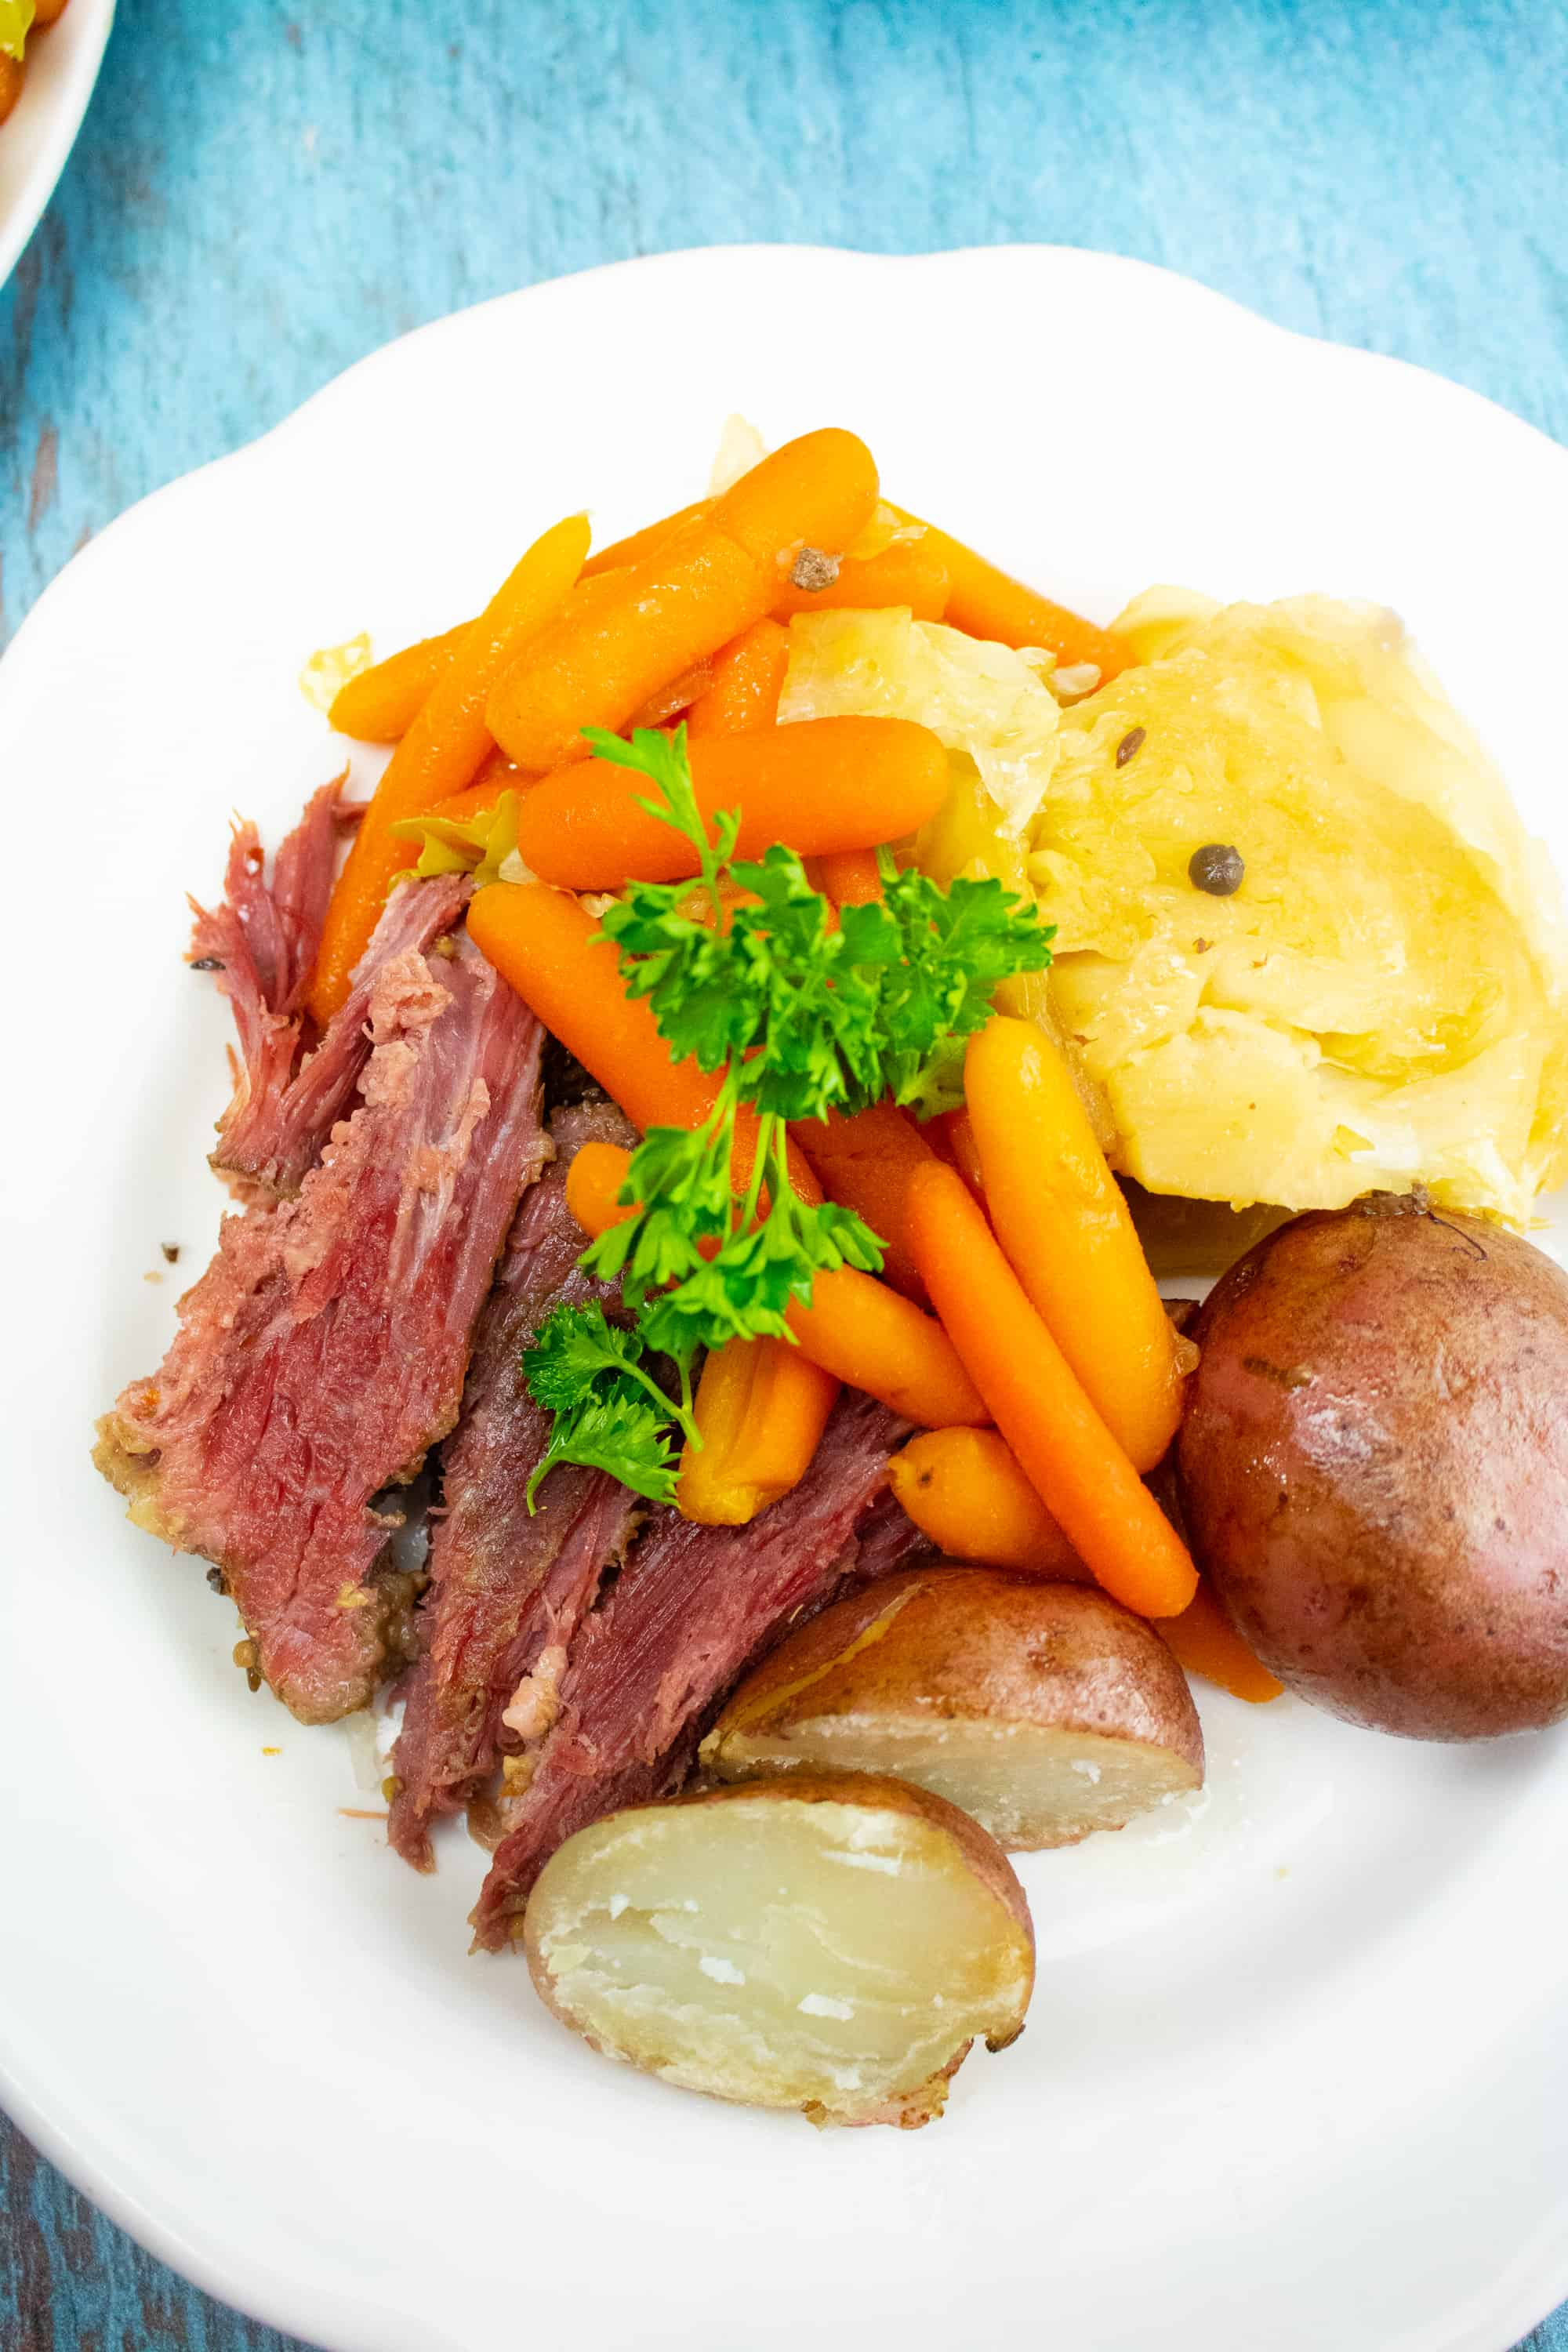 corned beef with potatoes, carrots and cabbage on a white plate